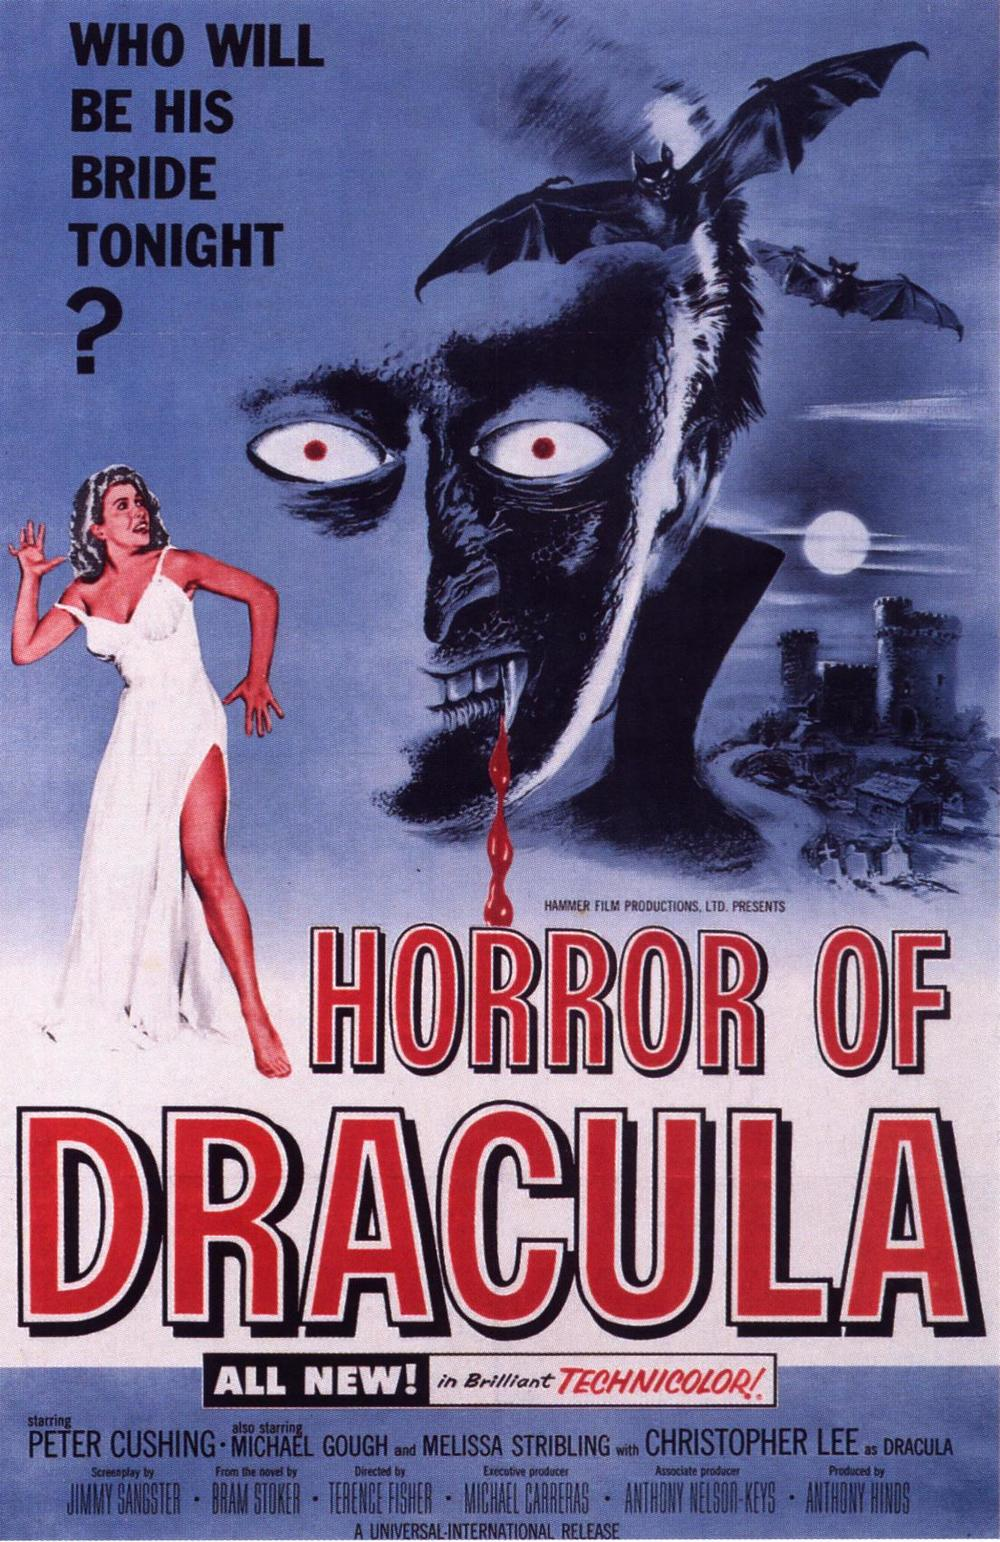 horror-of-dracula-movie-poster.jpg